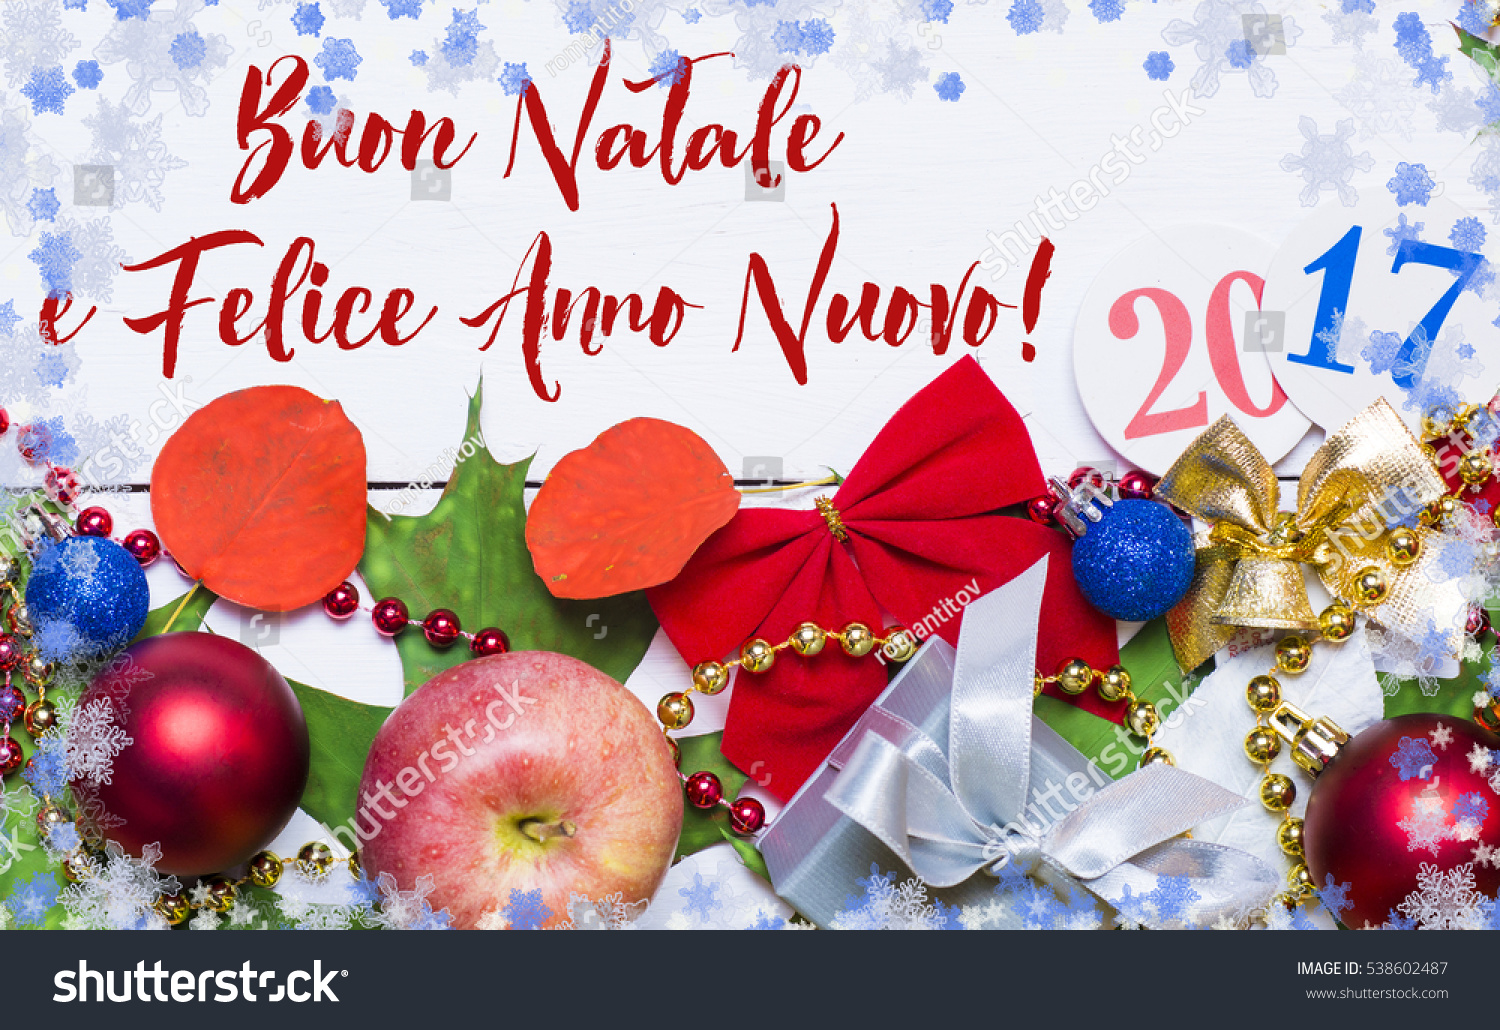 merry christmas and happy new year in italian language 2017 card holiday frame from apples - How To Say Merry Christmas In Italian